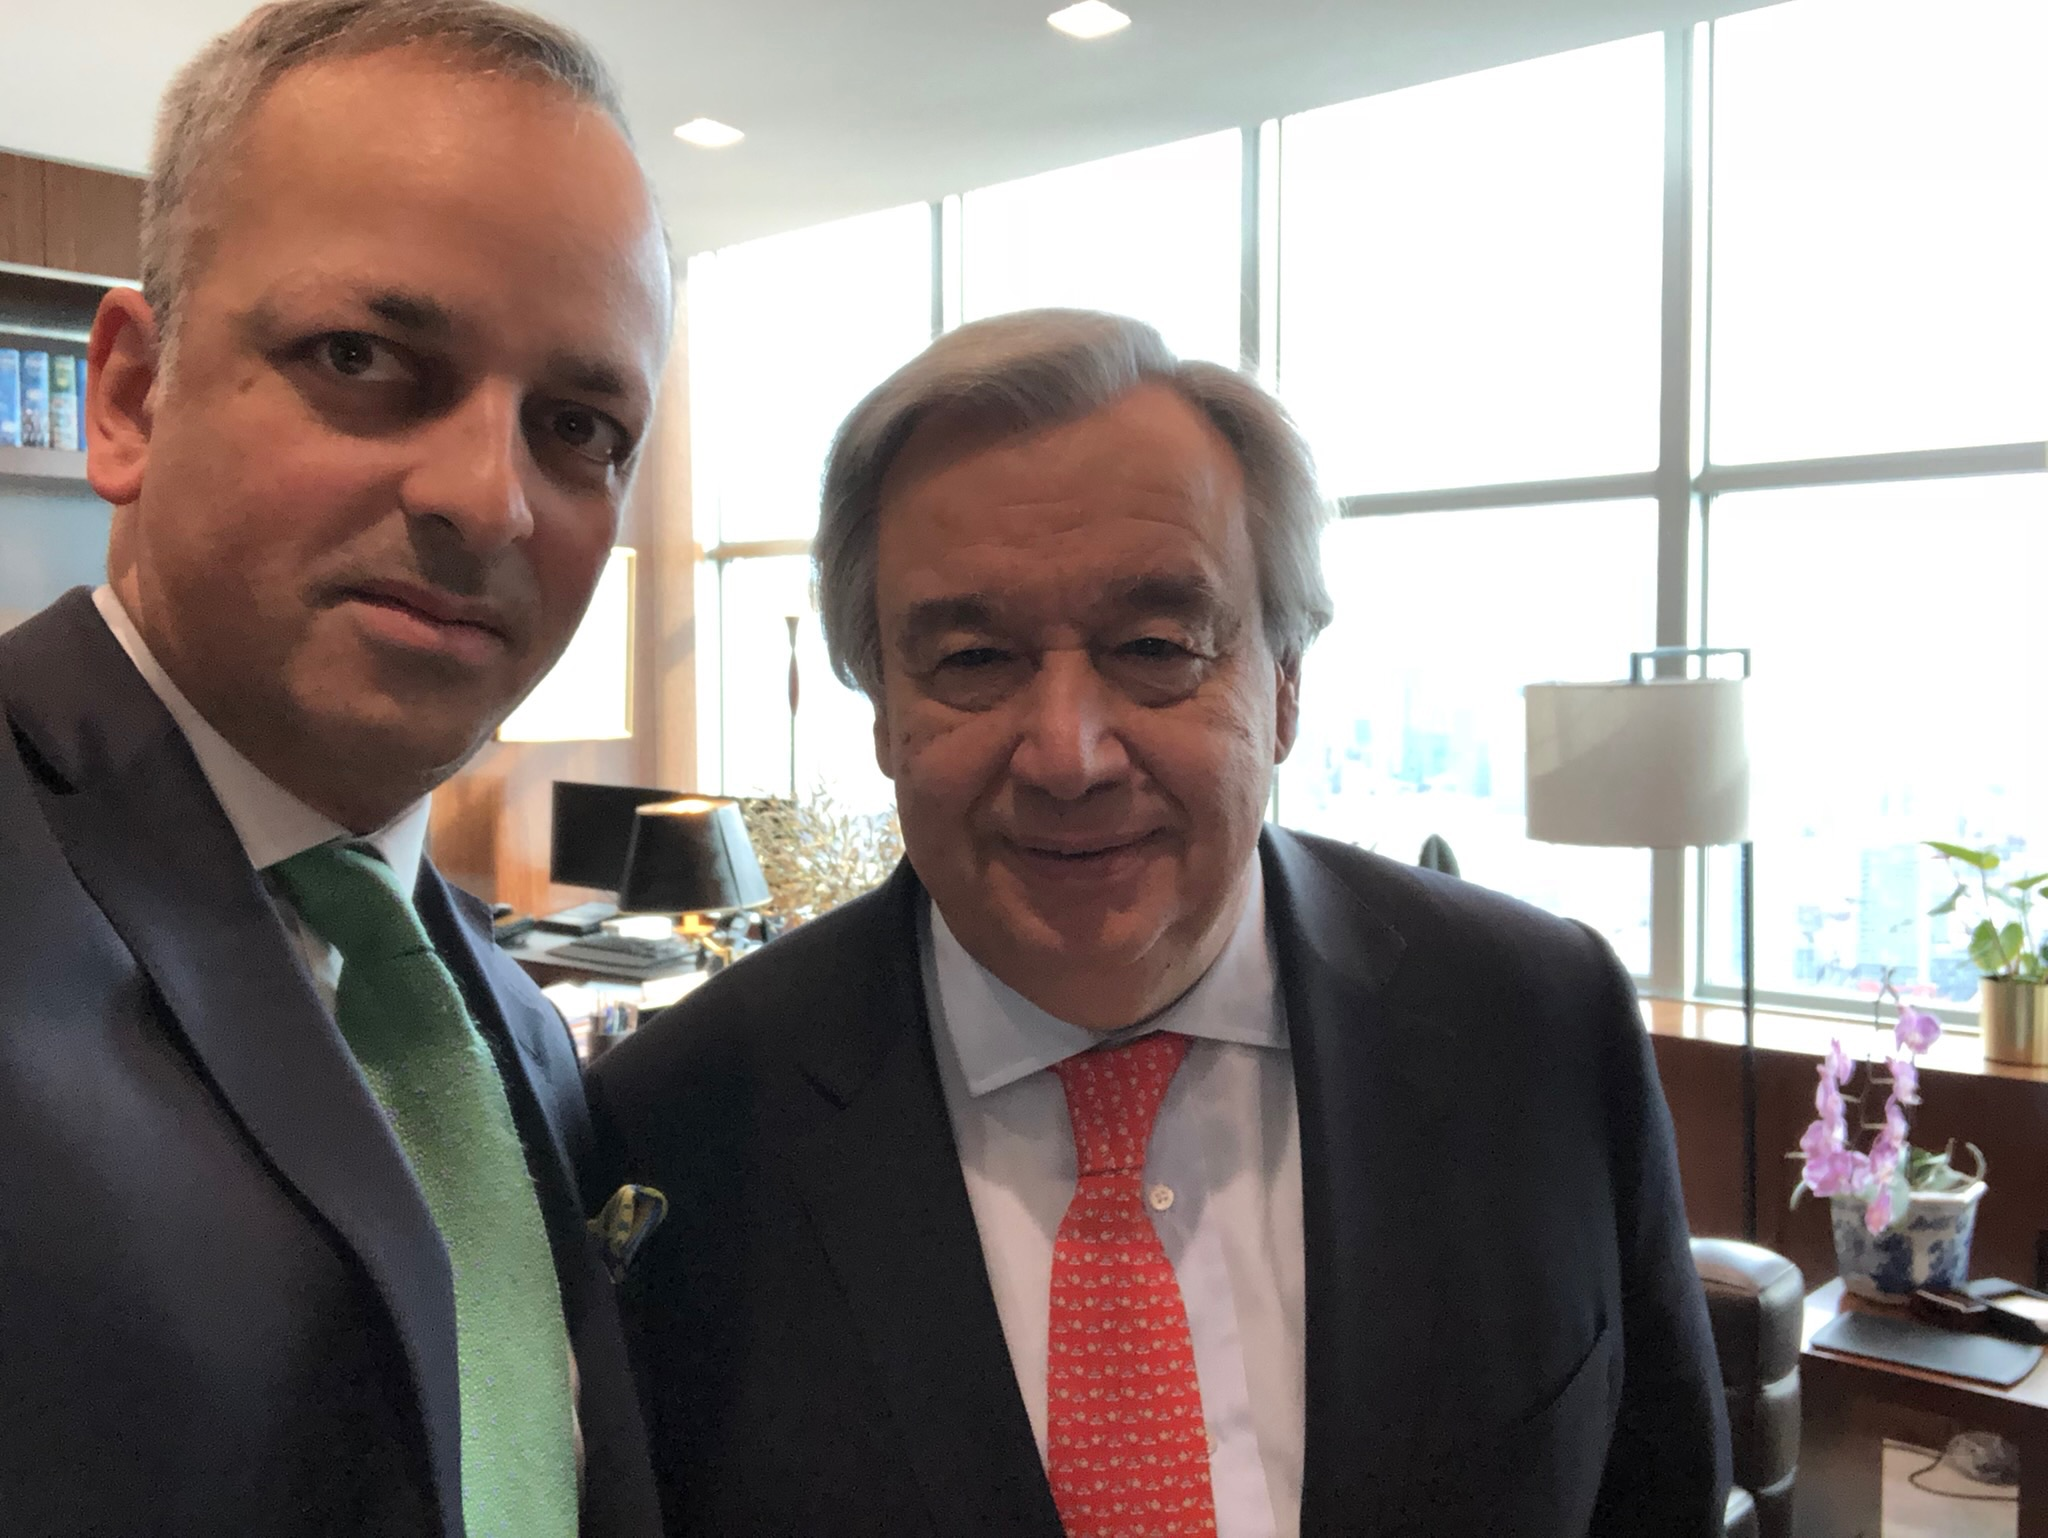 Ian Richards with António Guterres, Secretary-General of the United Nations.  Credit: Ian Richard